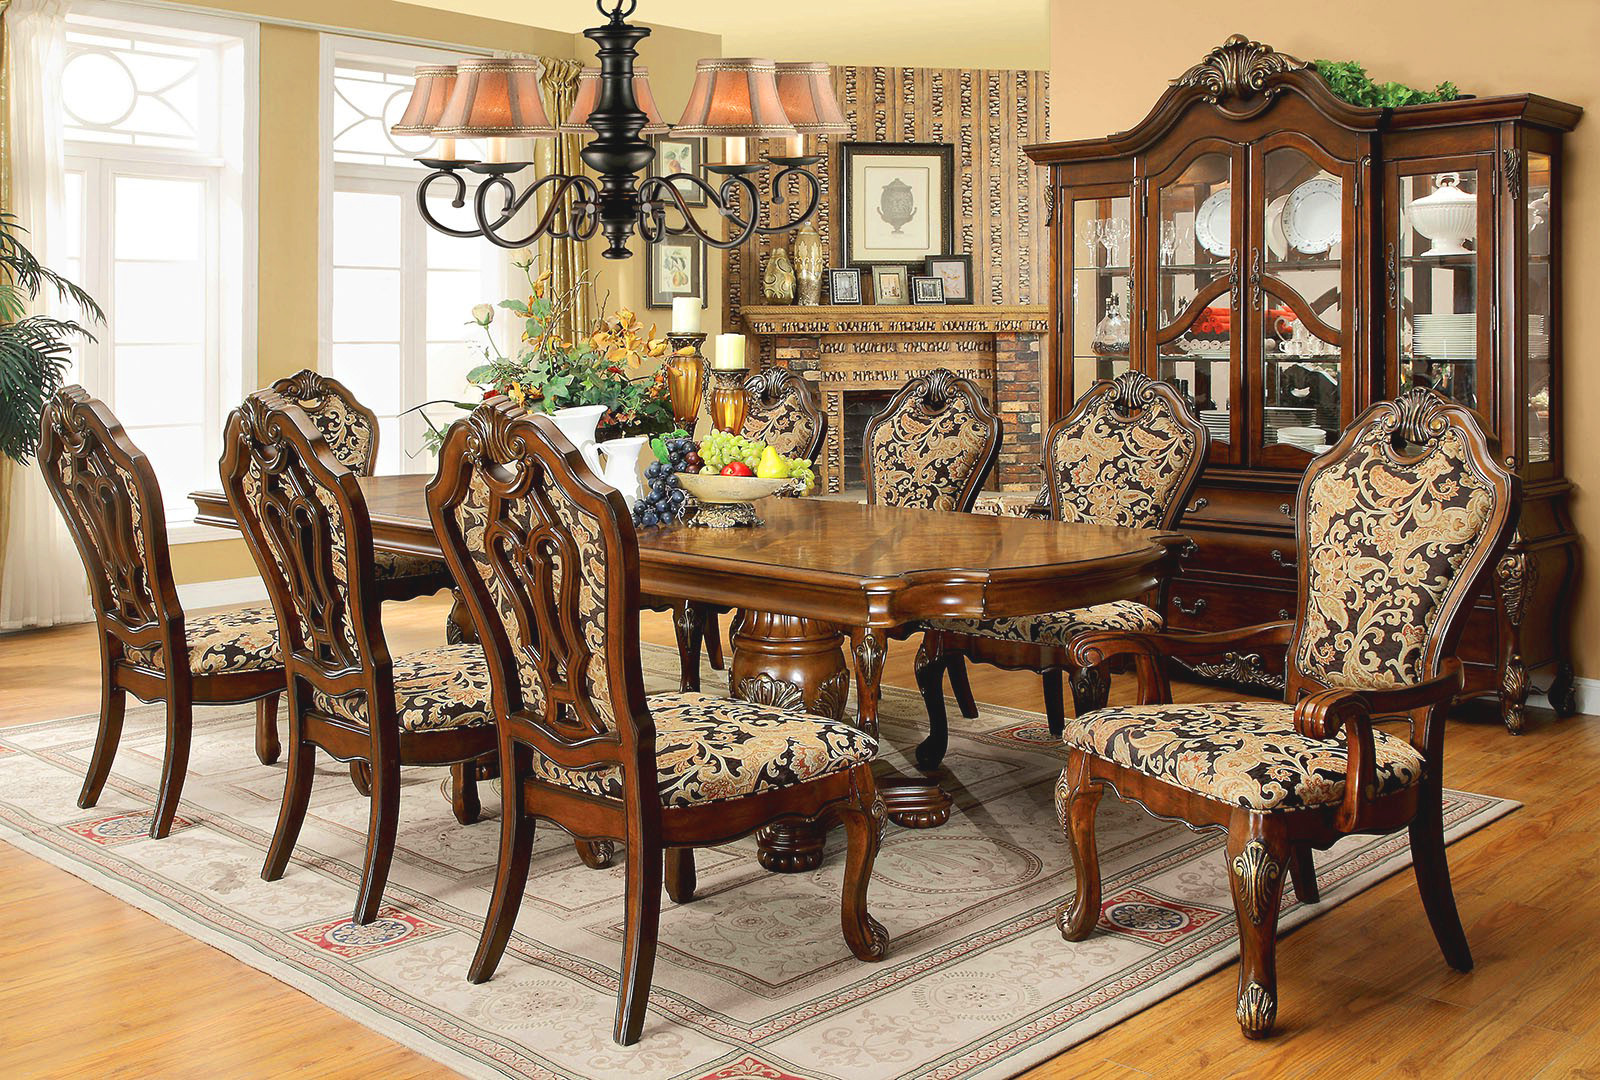 Best ideas about Formal Dining Rooms Furniture . Save or Pin Opulent Traditional Style Formal Dining Room Furniture Set Now.